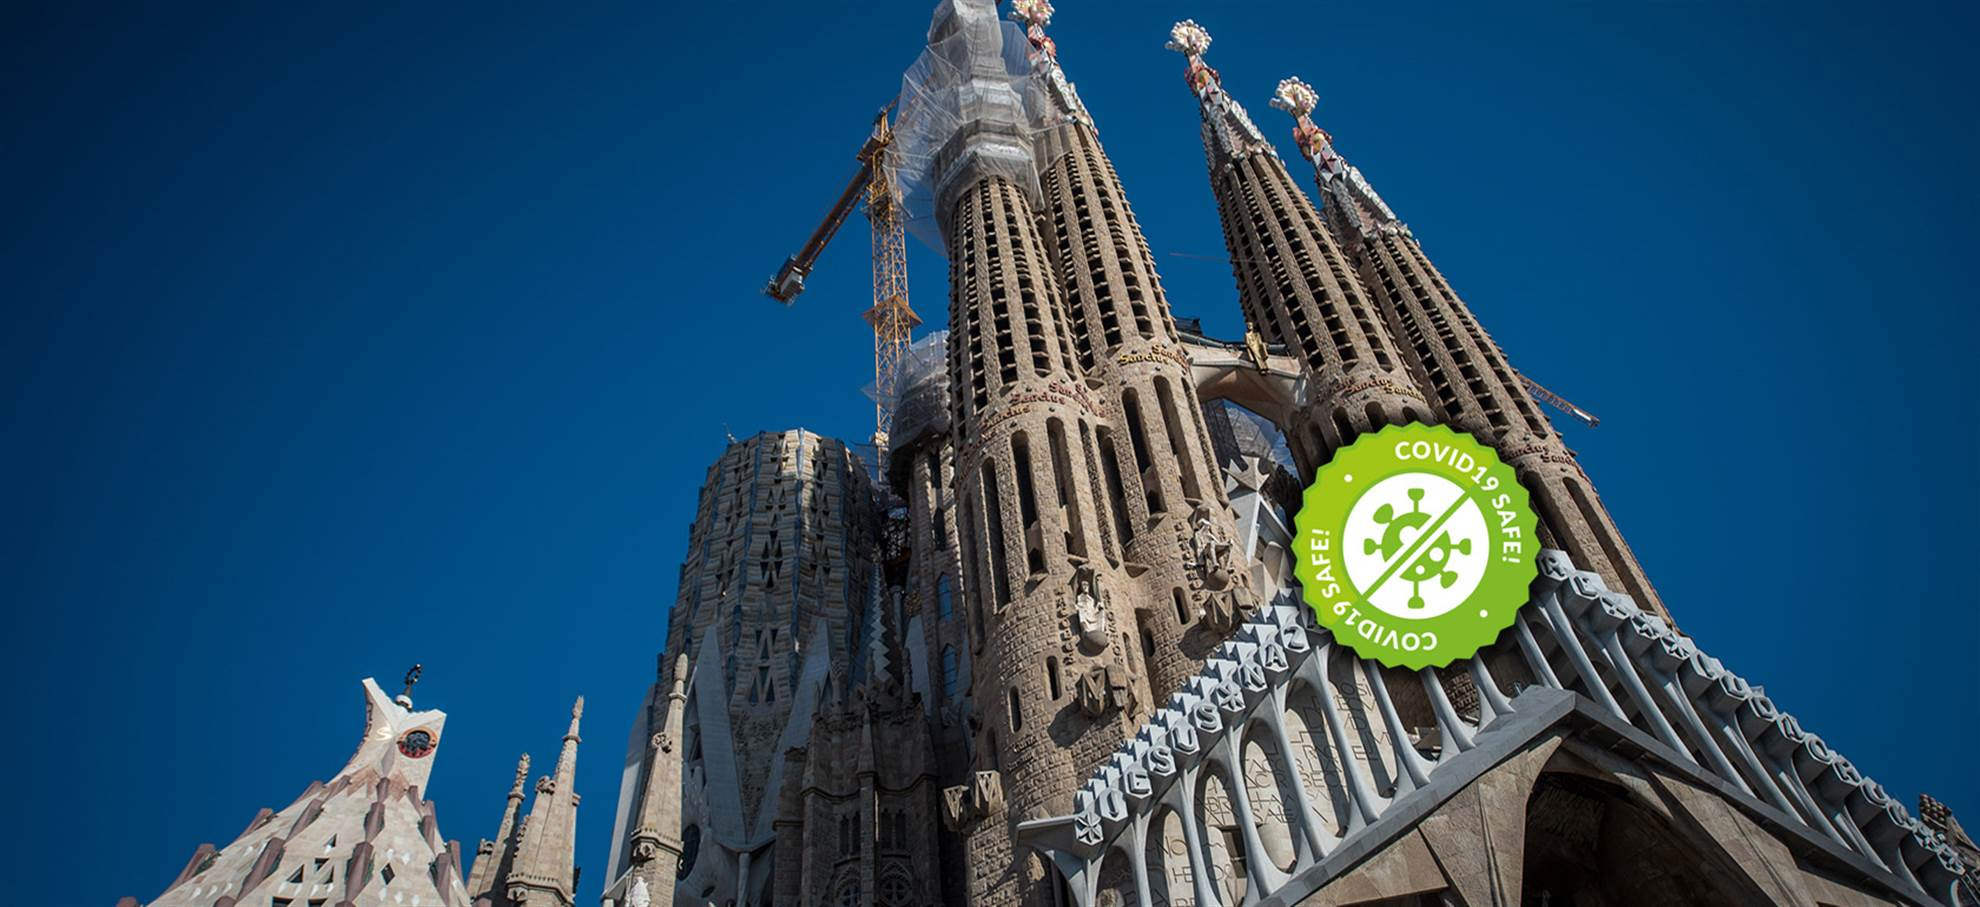 The Sagrada Familia 'The Facades Tour'